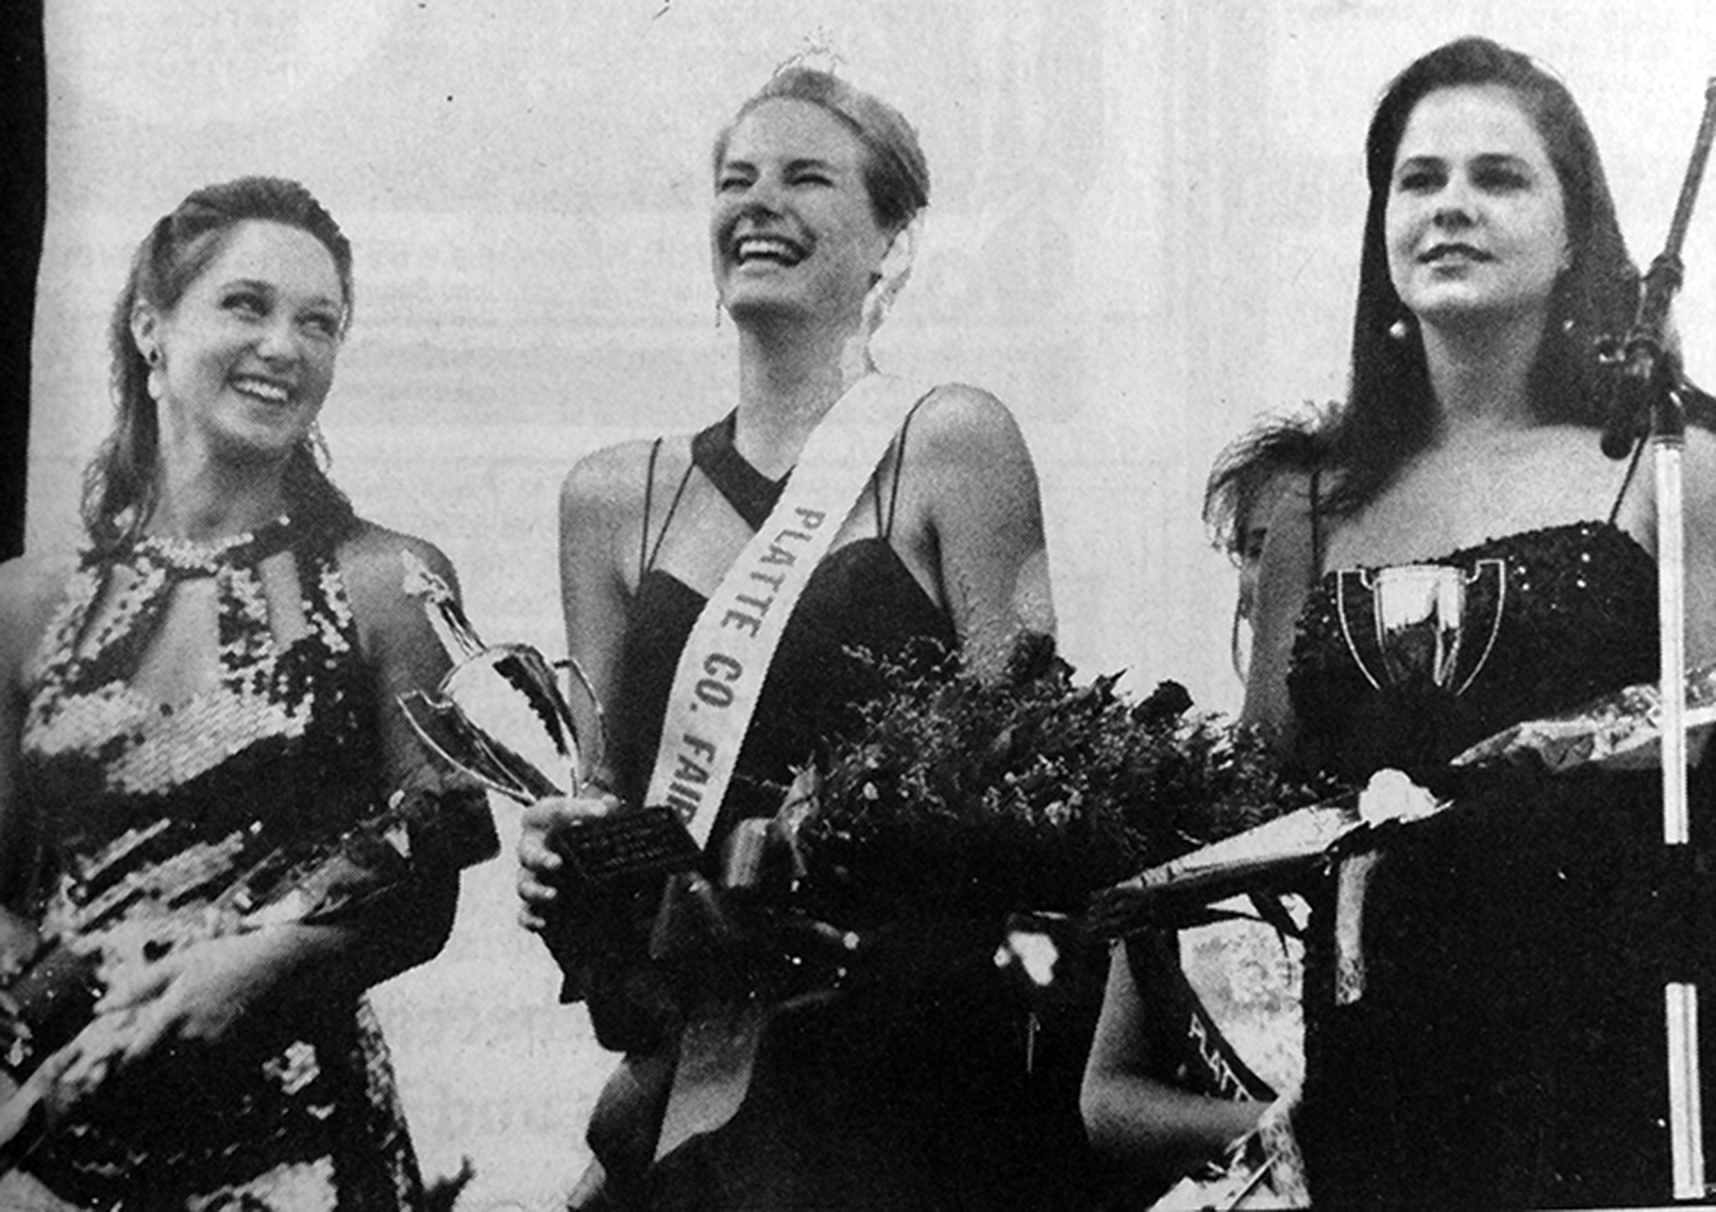 Citizen file photo Anne Swaney, center, earned the title of Platte County Fair Queen in the summer of 1994 competition shortly after she graduated from Platte County High School. Last week, authorities in the Central American country of Belize found Swaney murdered while she was vacationing there.